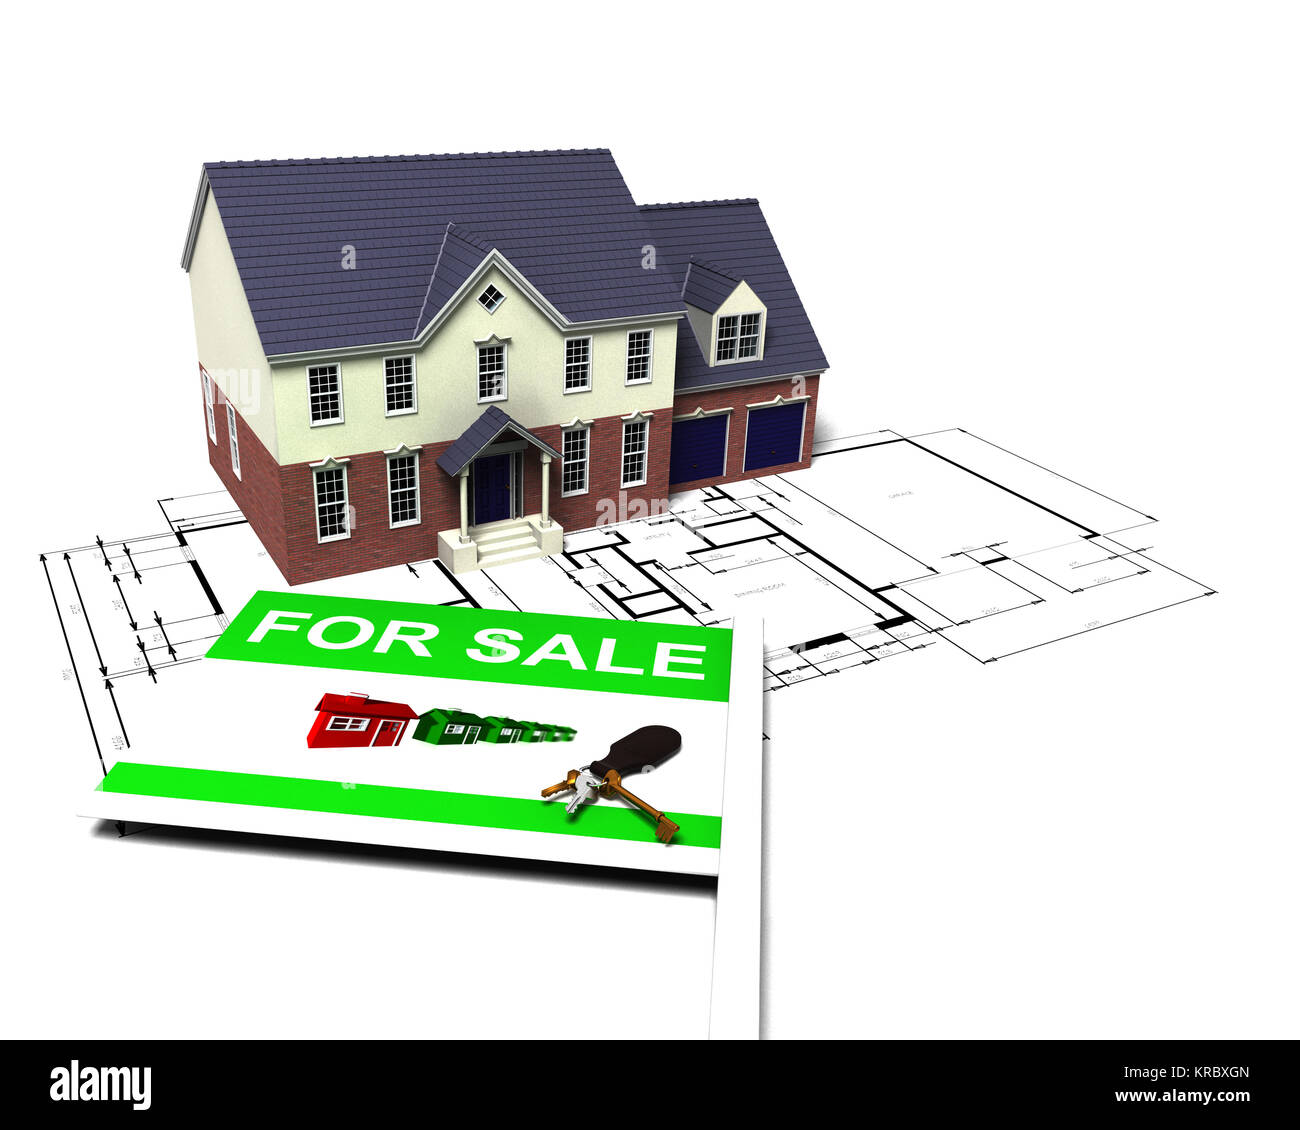 Blueprints 3d Stockfotos & Blueprints 3d Bilder - Alamy